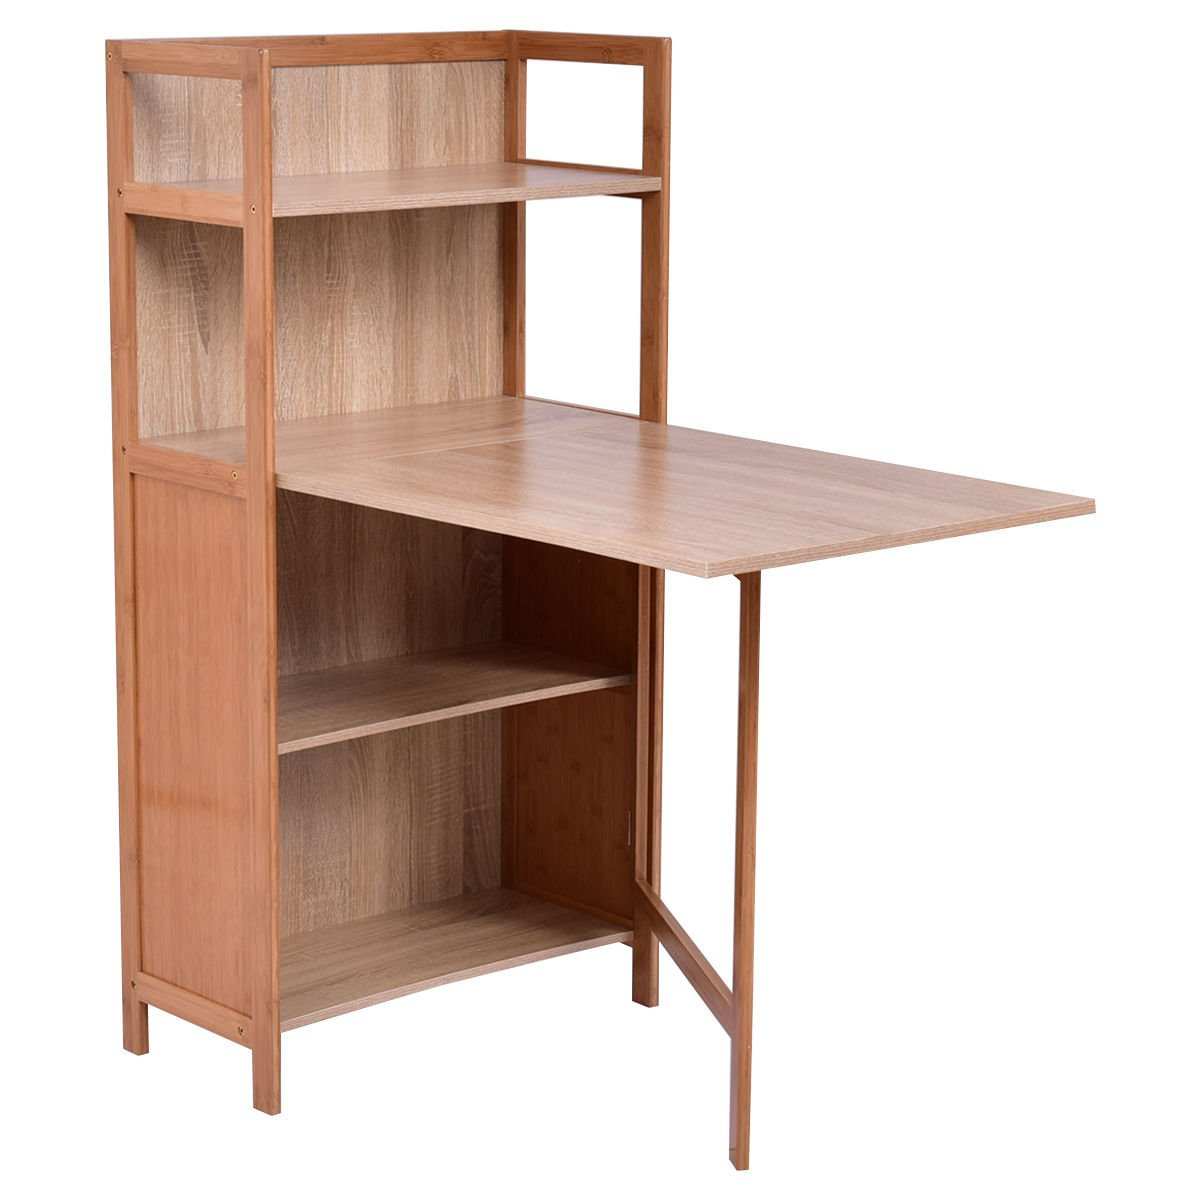 2 in 1 Folding Computer Desk Convertible with Fold Out Cabinet Book Shelf Workstation Wood